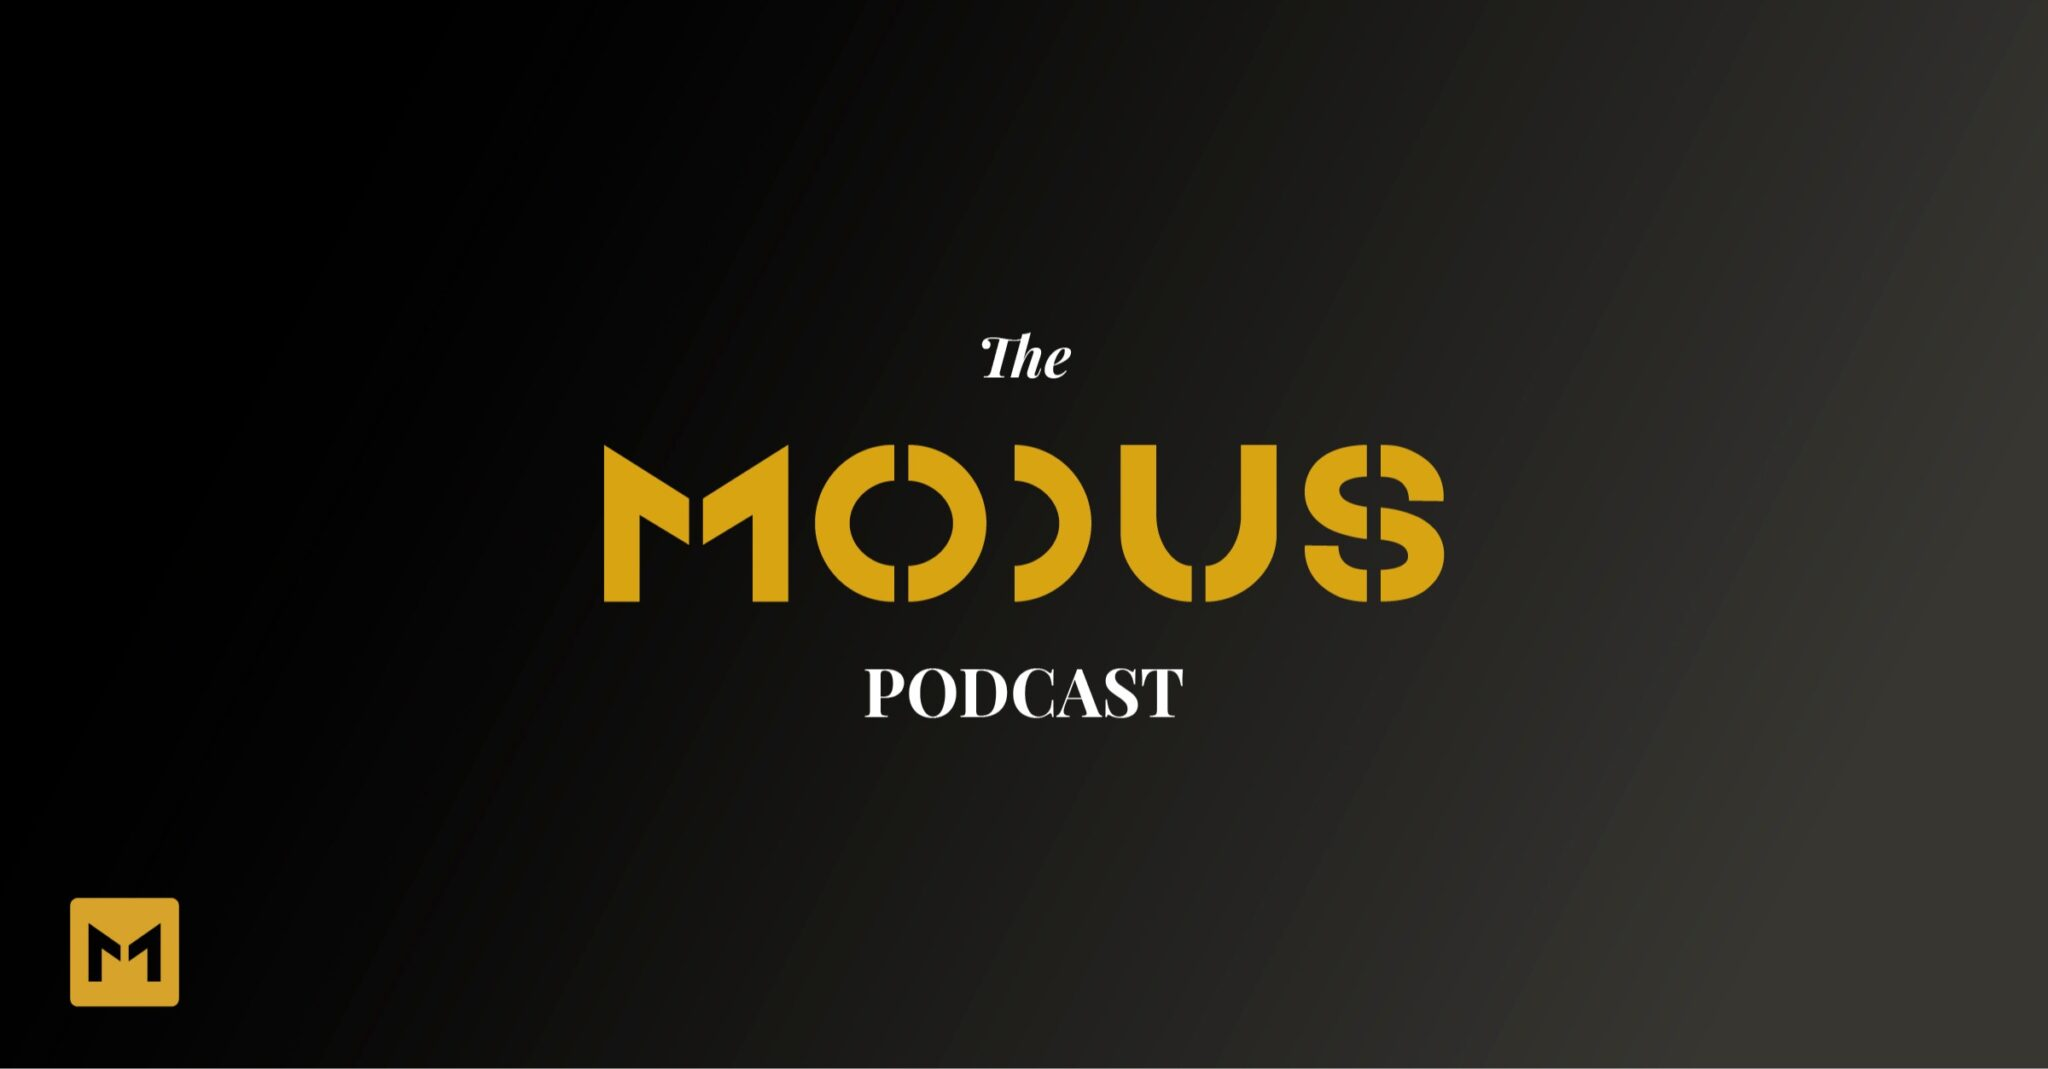 Introducing the Modus Podcast to the MENA Region